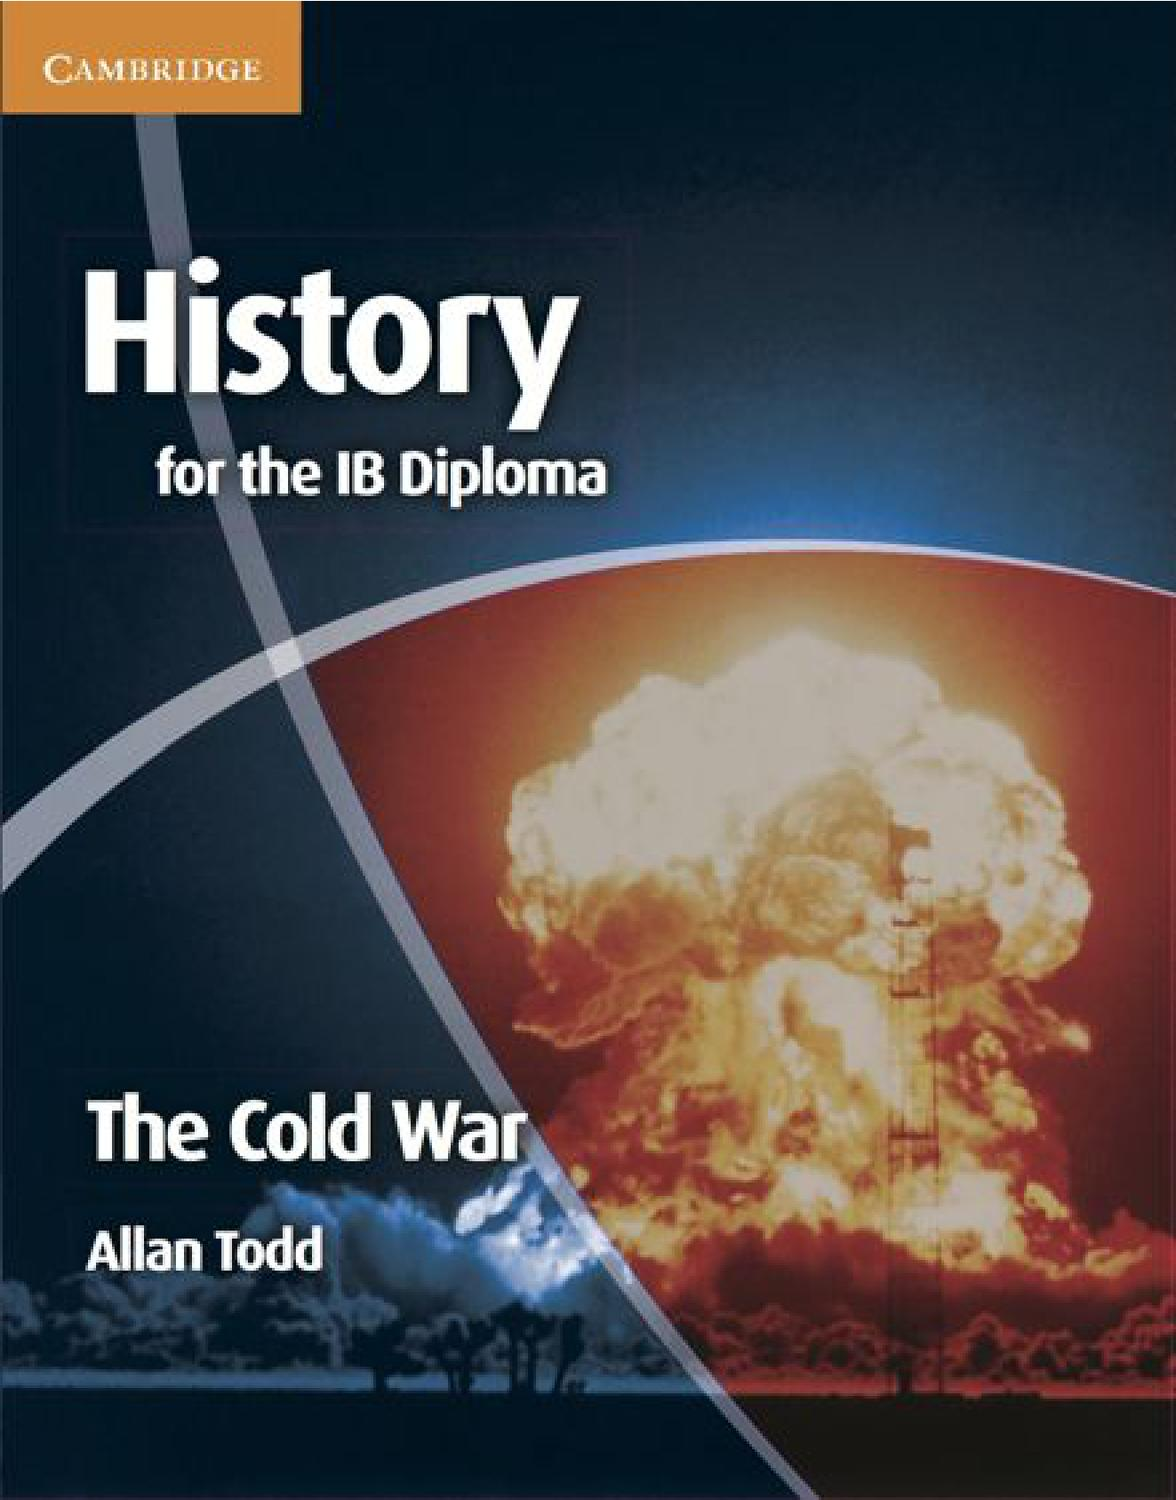 ib history outline for cold war The ib subject briefs illustrate key course components in the ib diploma  programme  the ib diploma programme standard level history  the cold  war.